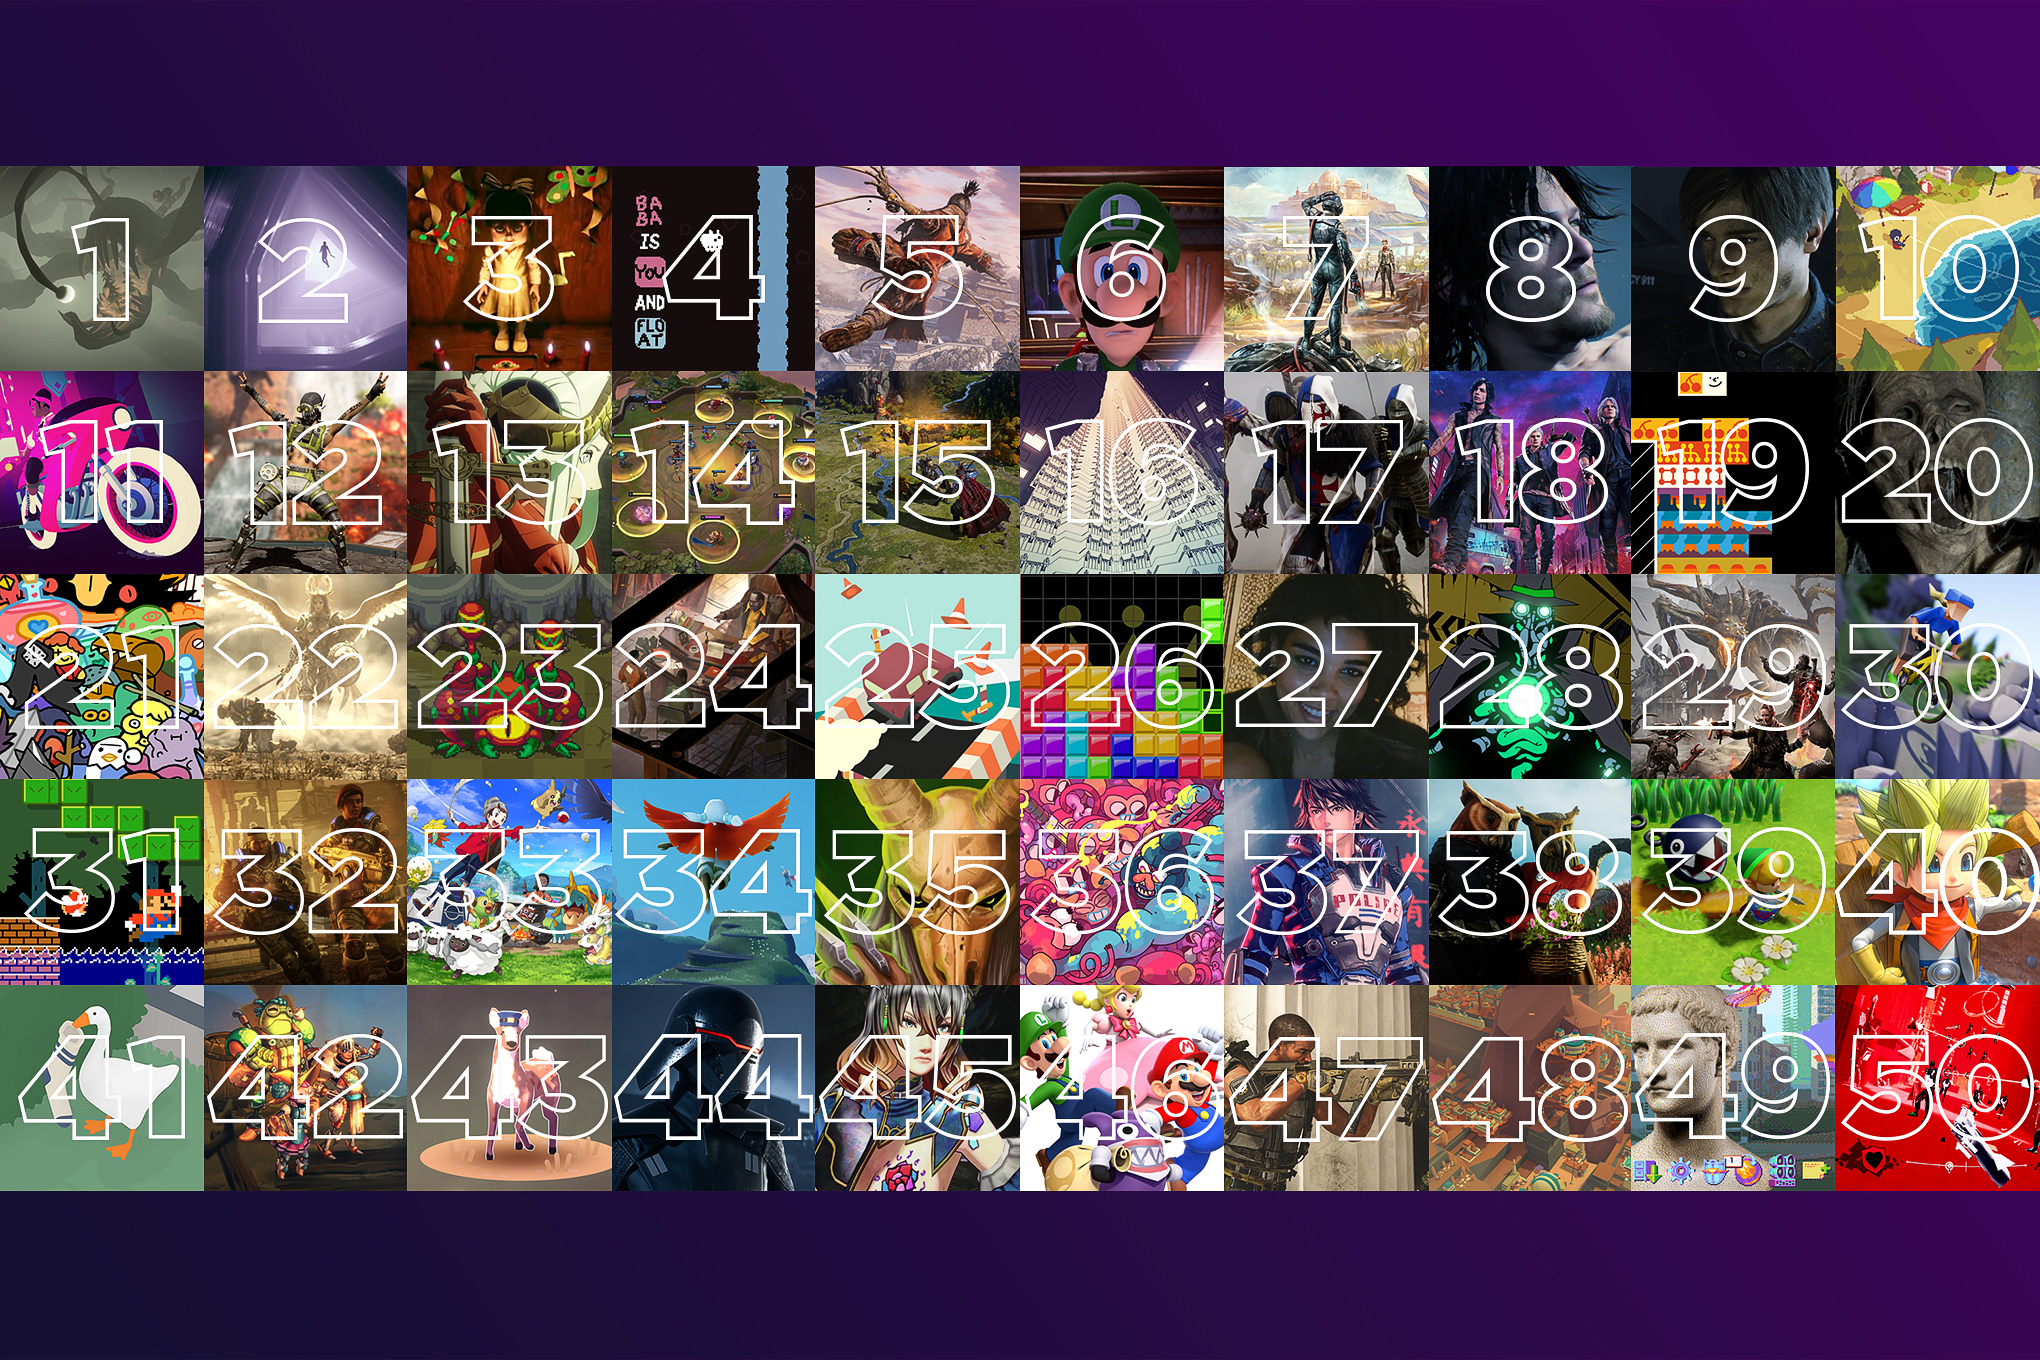 A grid of 50 images from various video games